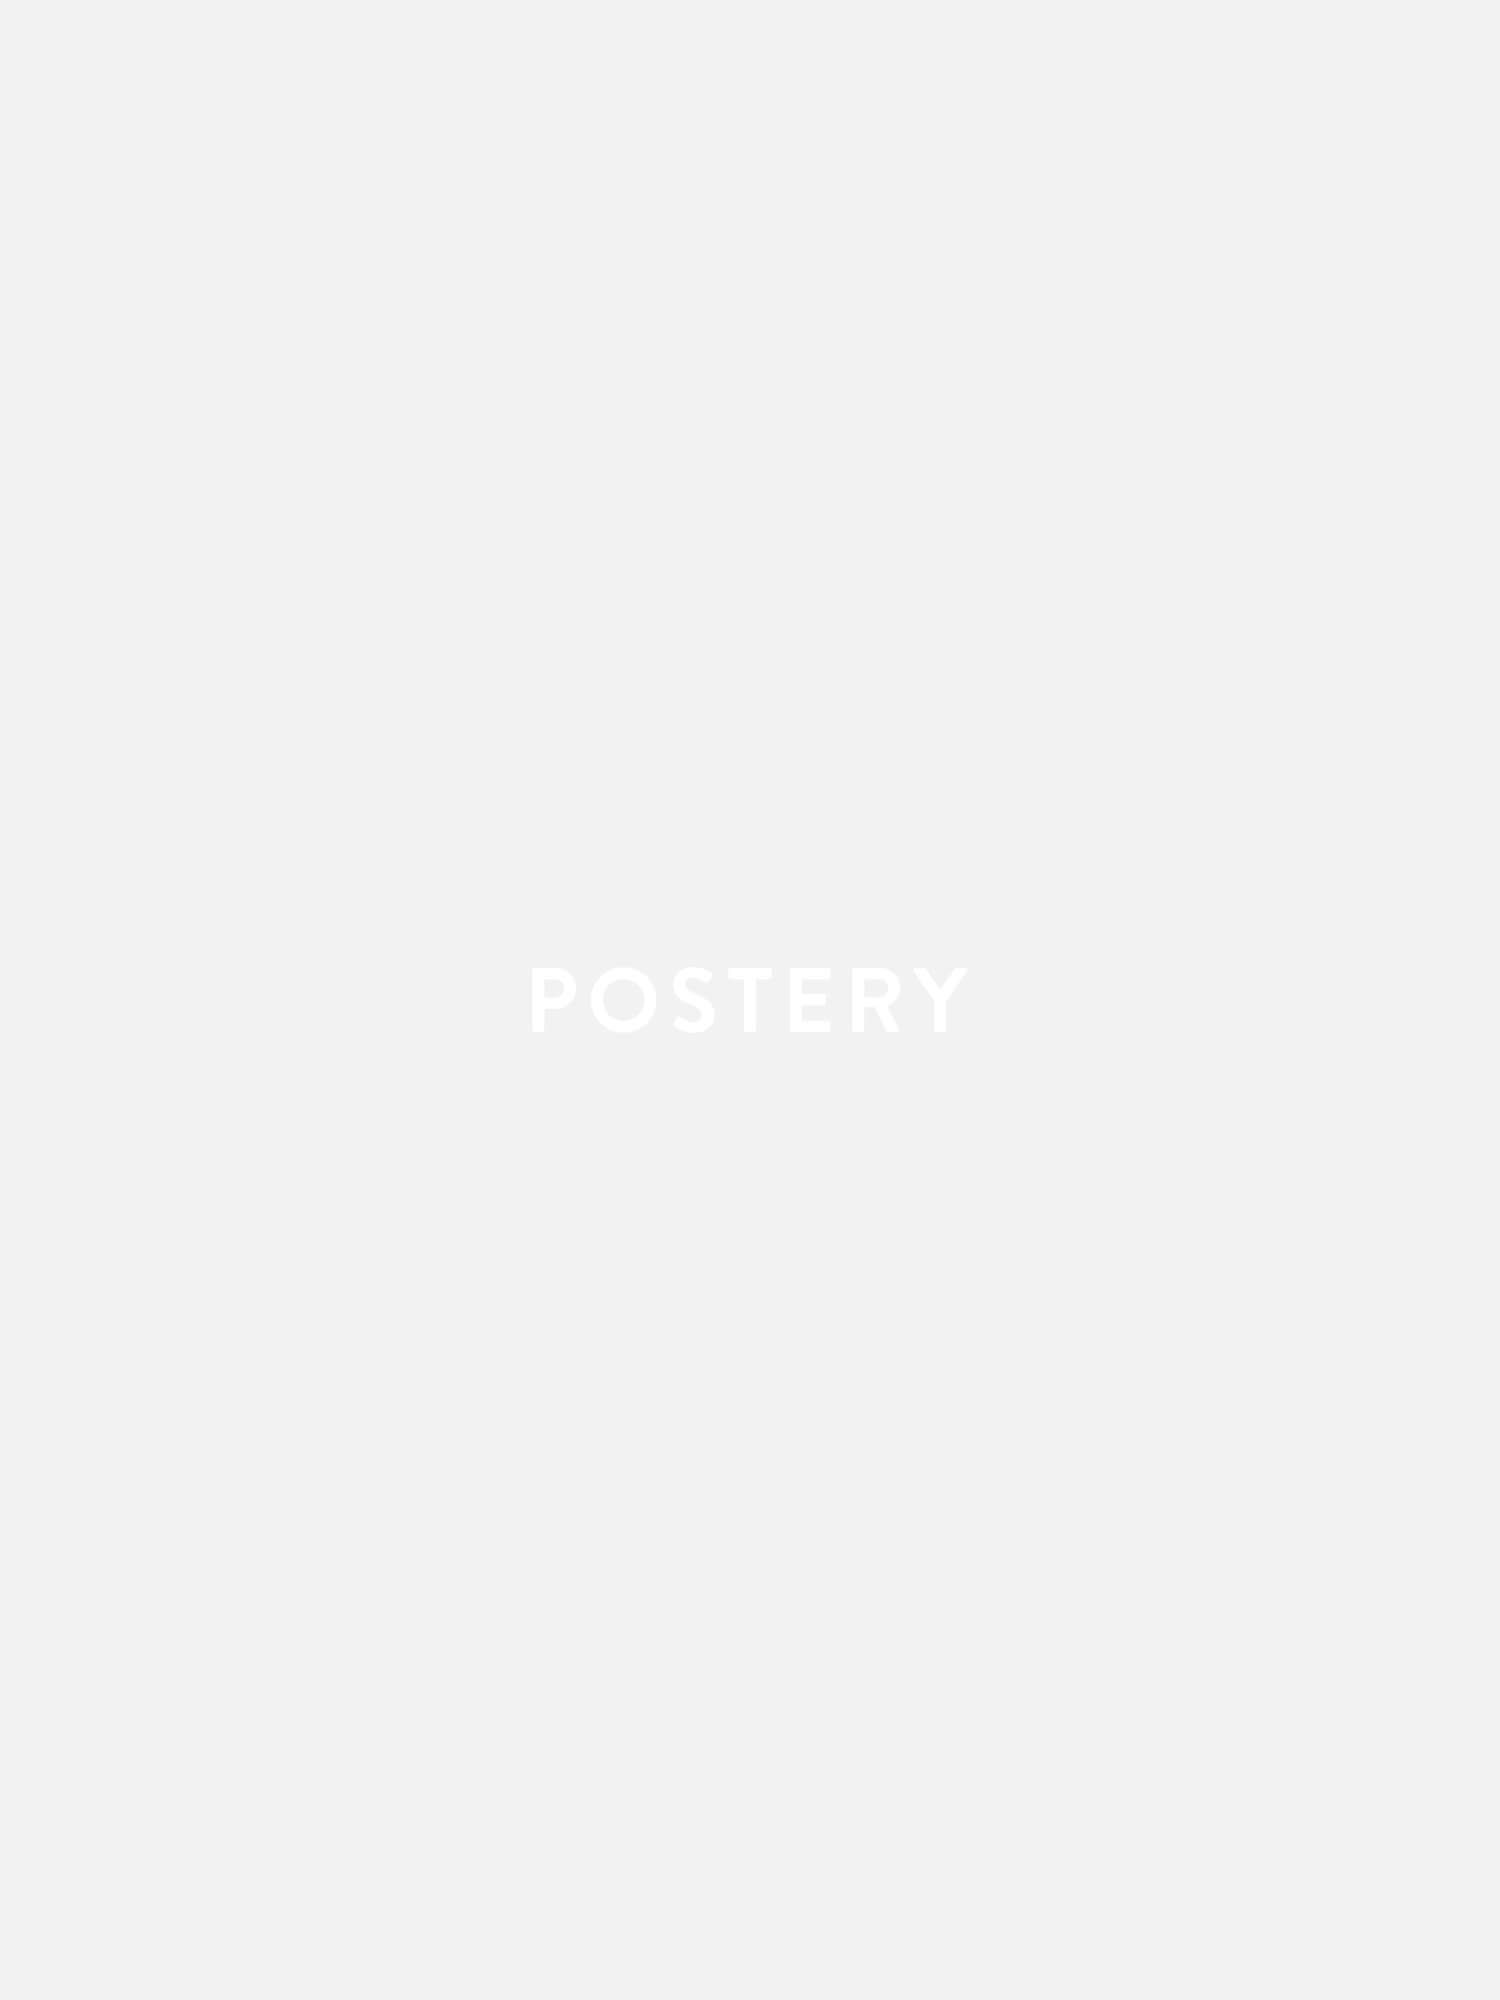 Black and White Coast Poster